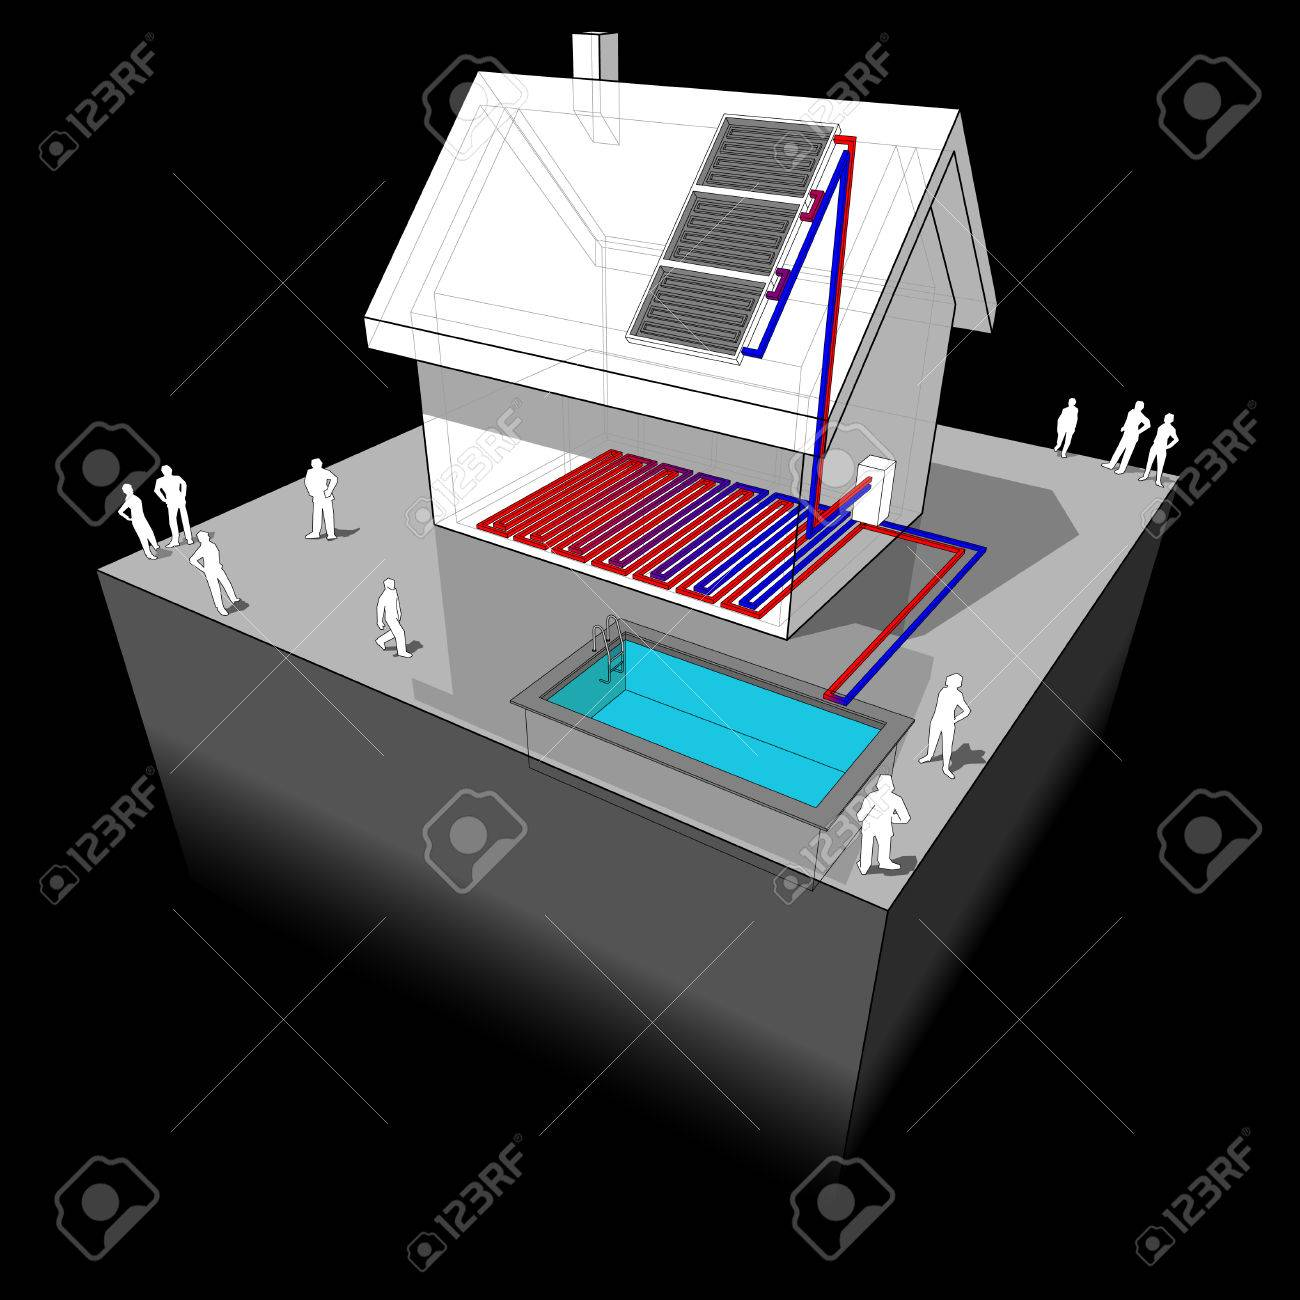 Similiar pool piping diagram keywords - Vector Diagram Of A Detached House With Floor Heating And Swimming Pool Heated By Solar Panel